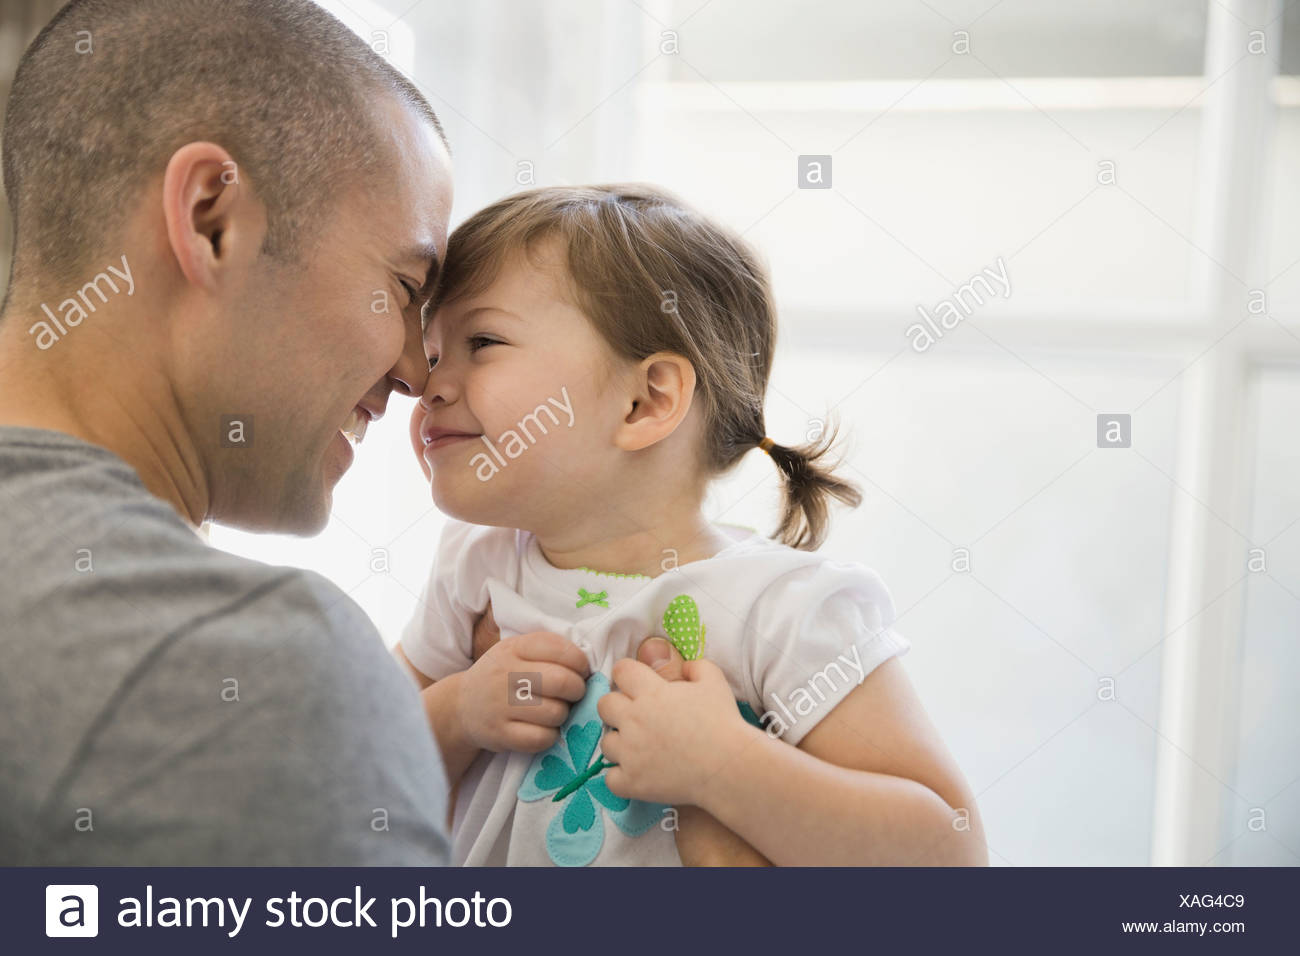 Father and daughter rubbing noses - Stock Image